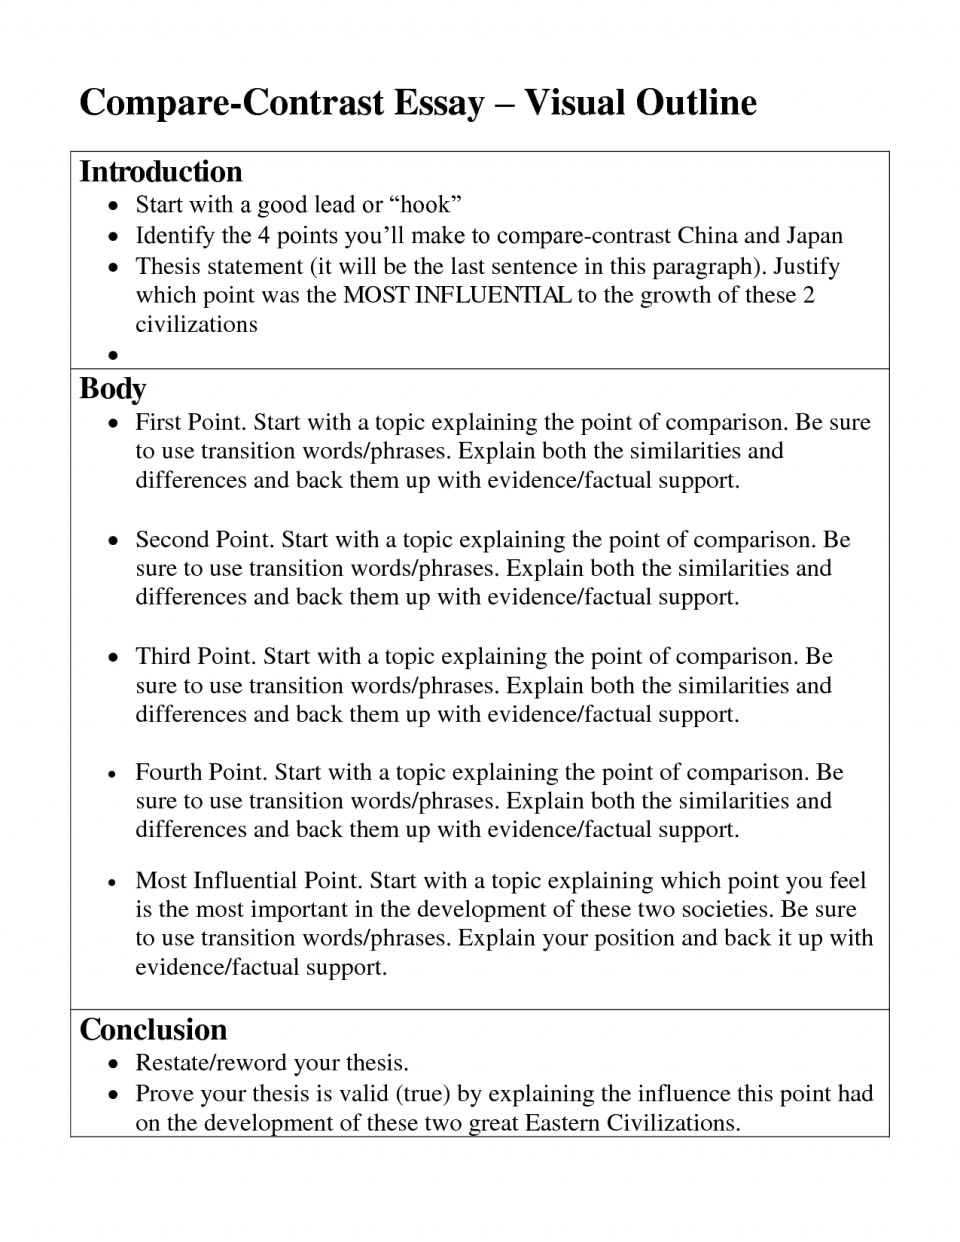 004 Comparison And Contrast Essay Outline Impressive Compare Format Middle School Worksheet Pdf Examples 960